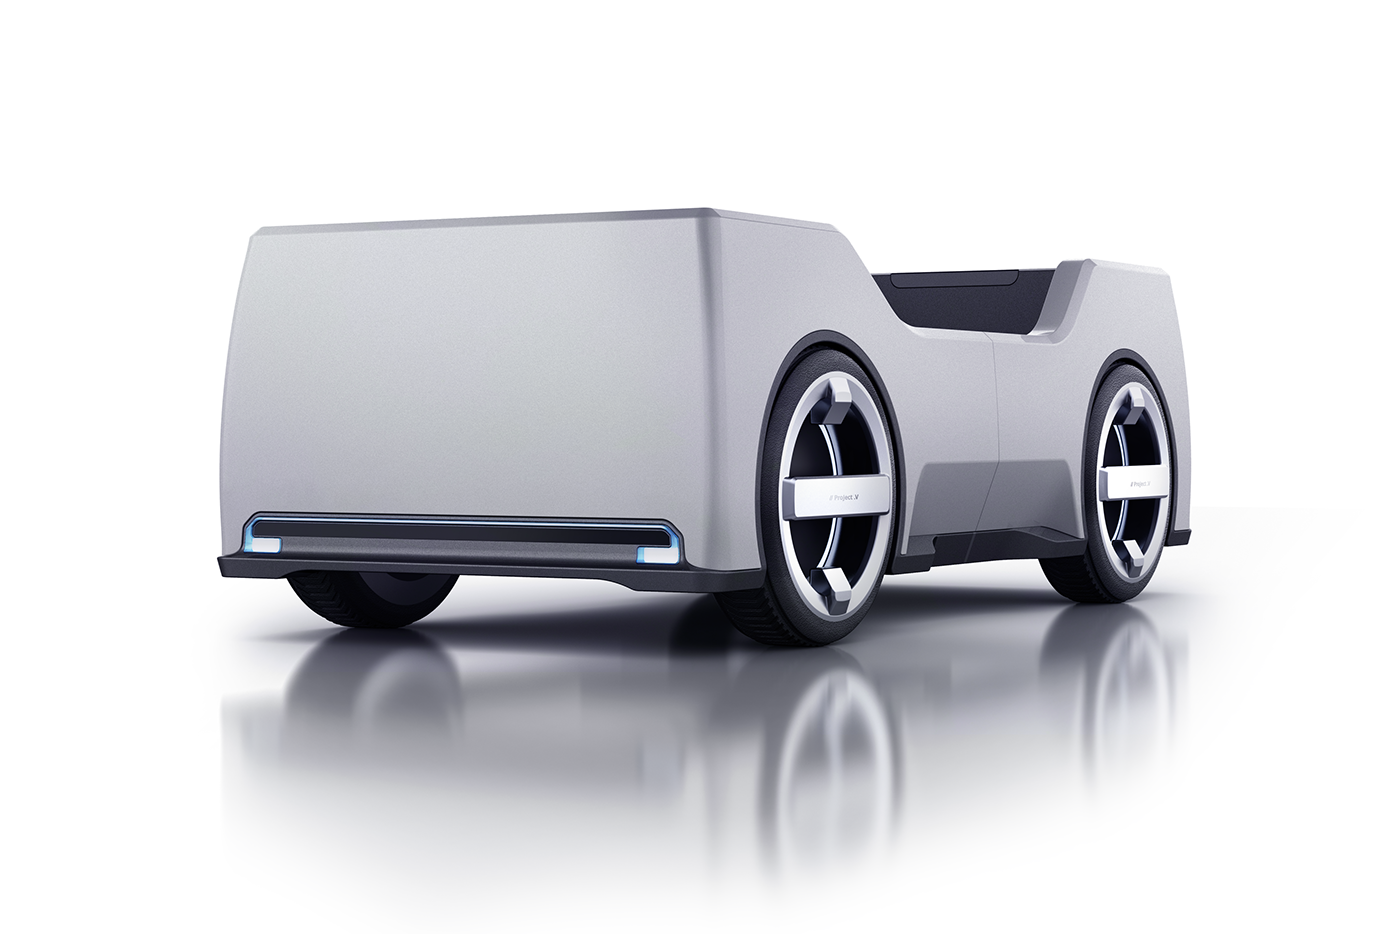 robot design,industrial design ,Vehicle,concept design,inspired design,product,drone,modular,trend,DAWN